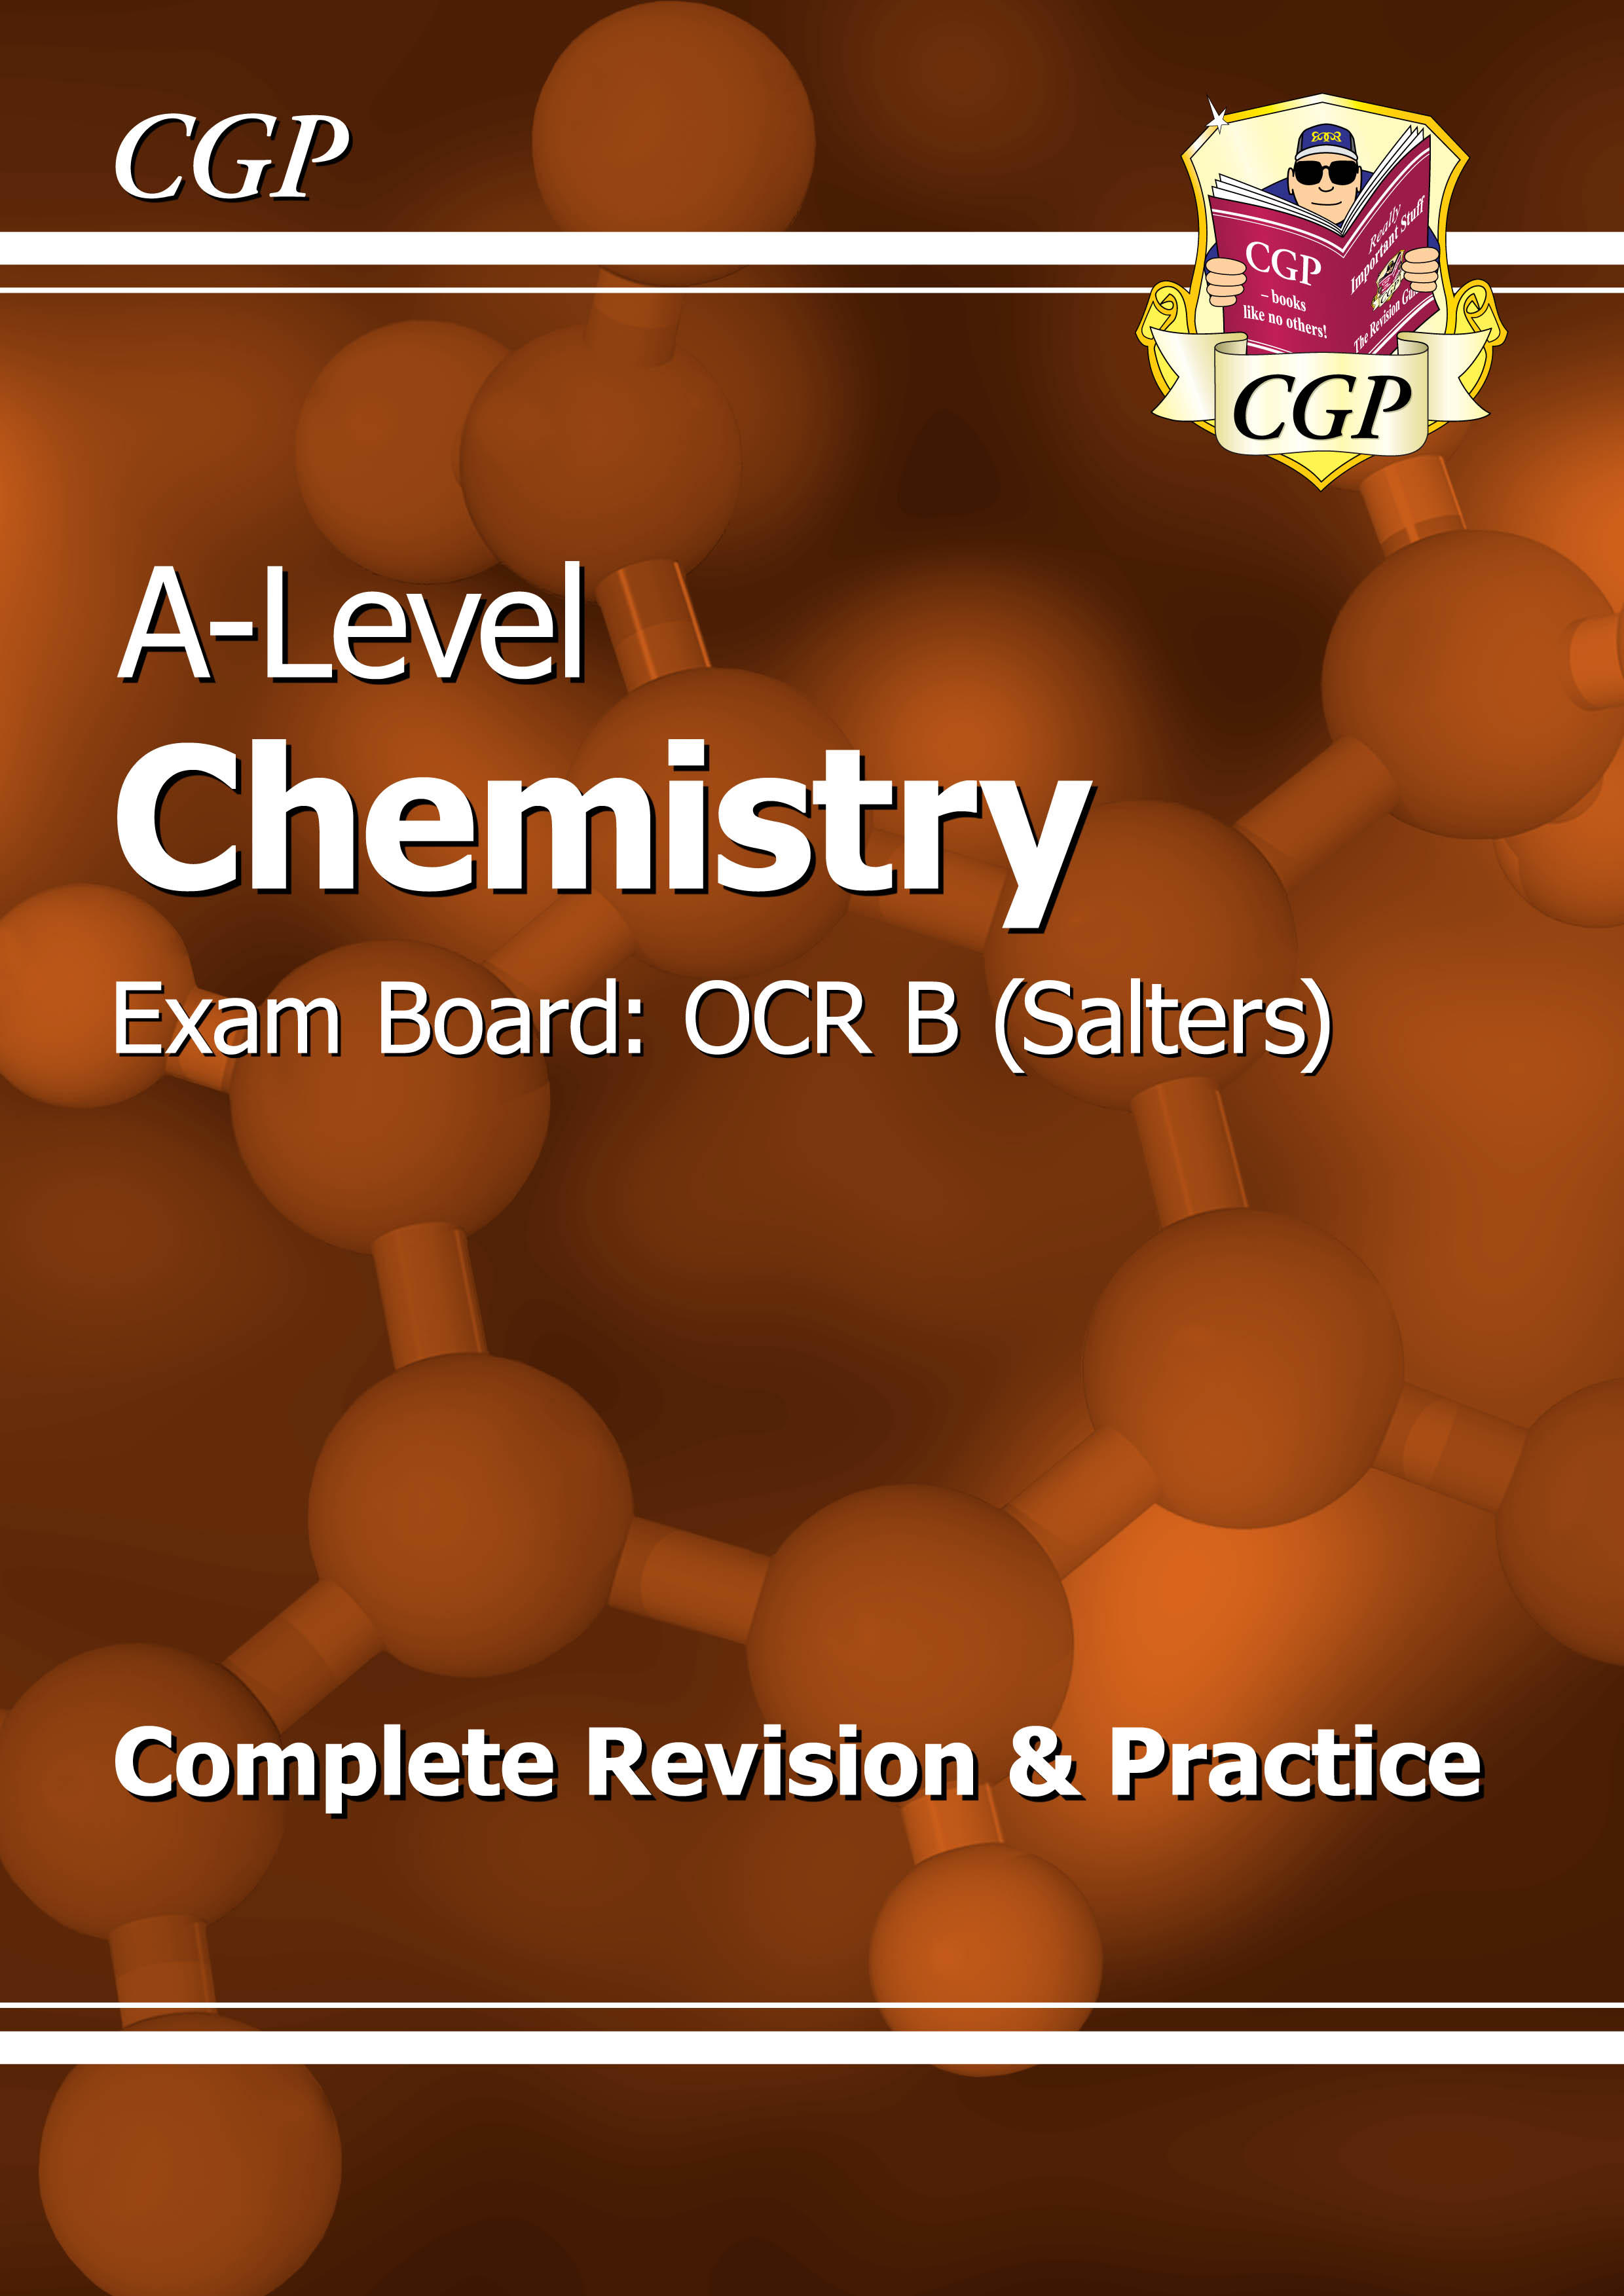 CRBR72DK - A-Level Chemistry: OCR B Year 1 & 2 Complete Revision & Practice